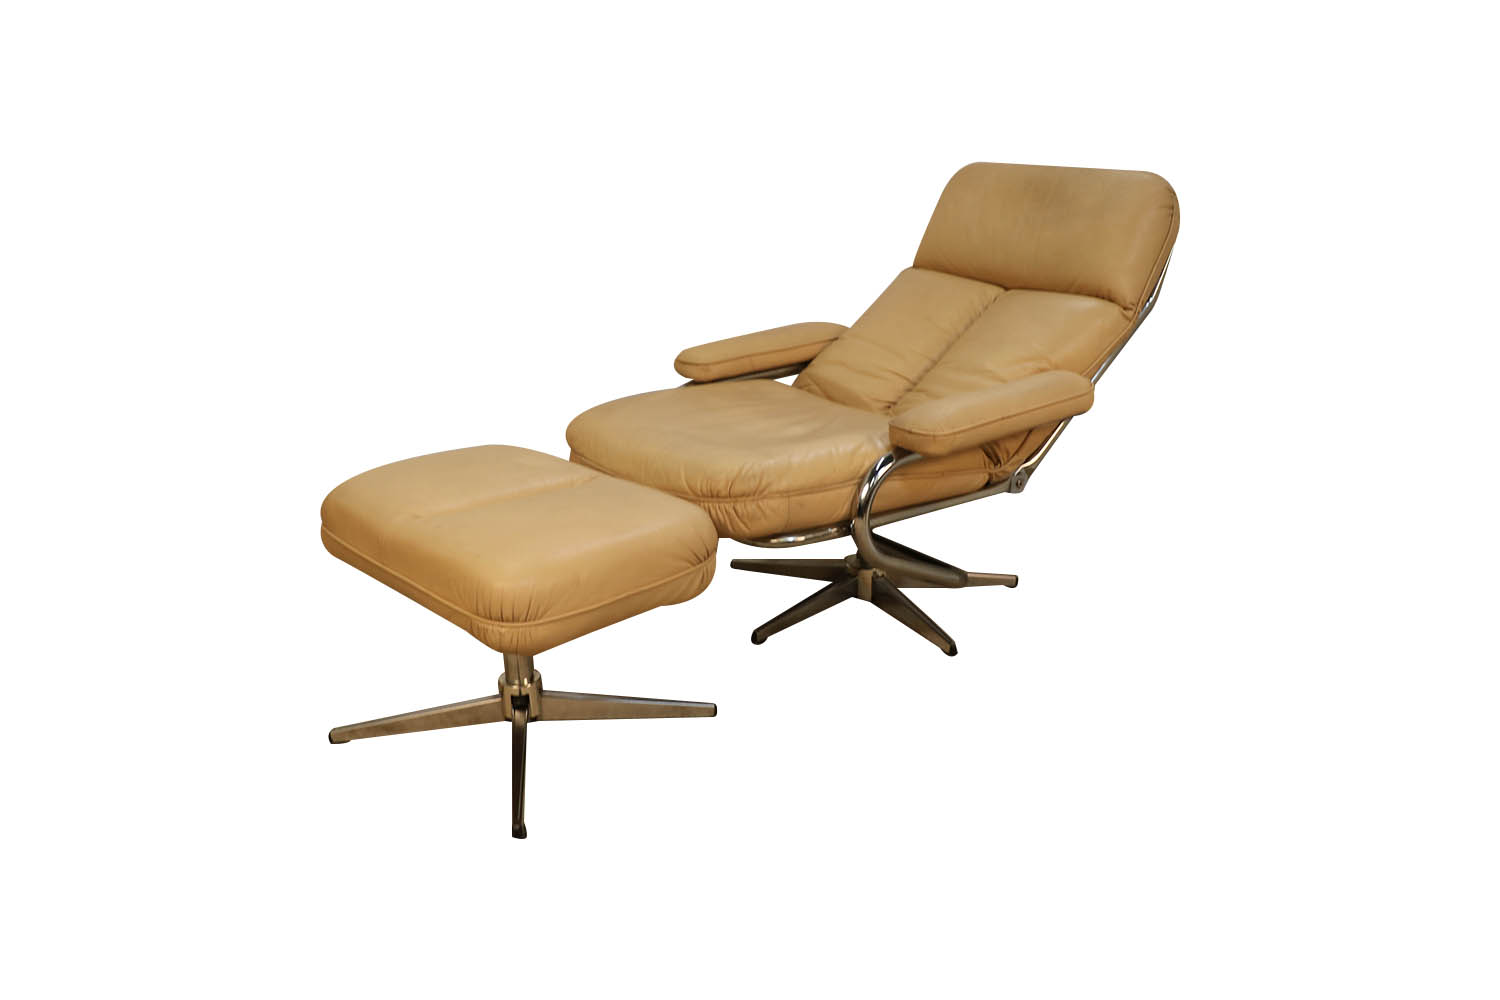 mid century modern chrome leather recliner chair and ottoman set mary kay s furniture